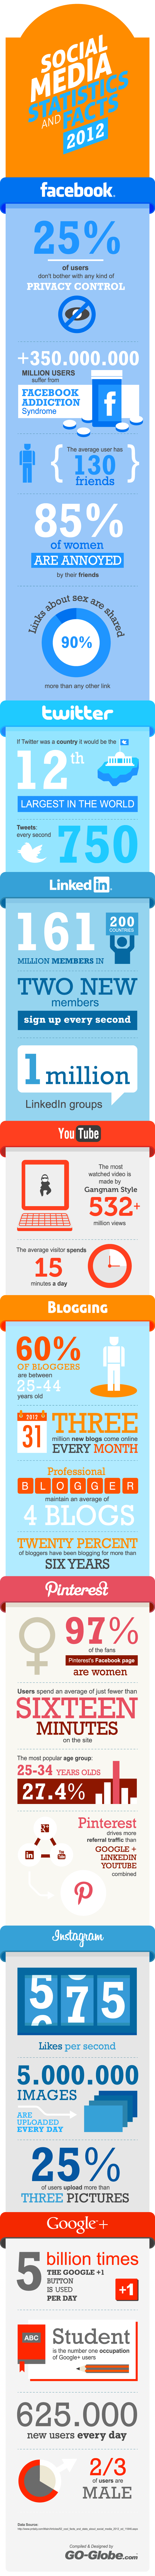 infografia social media - blog hostalia hosting